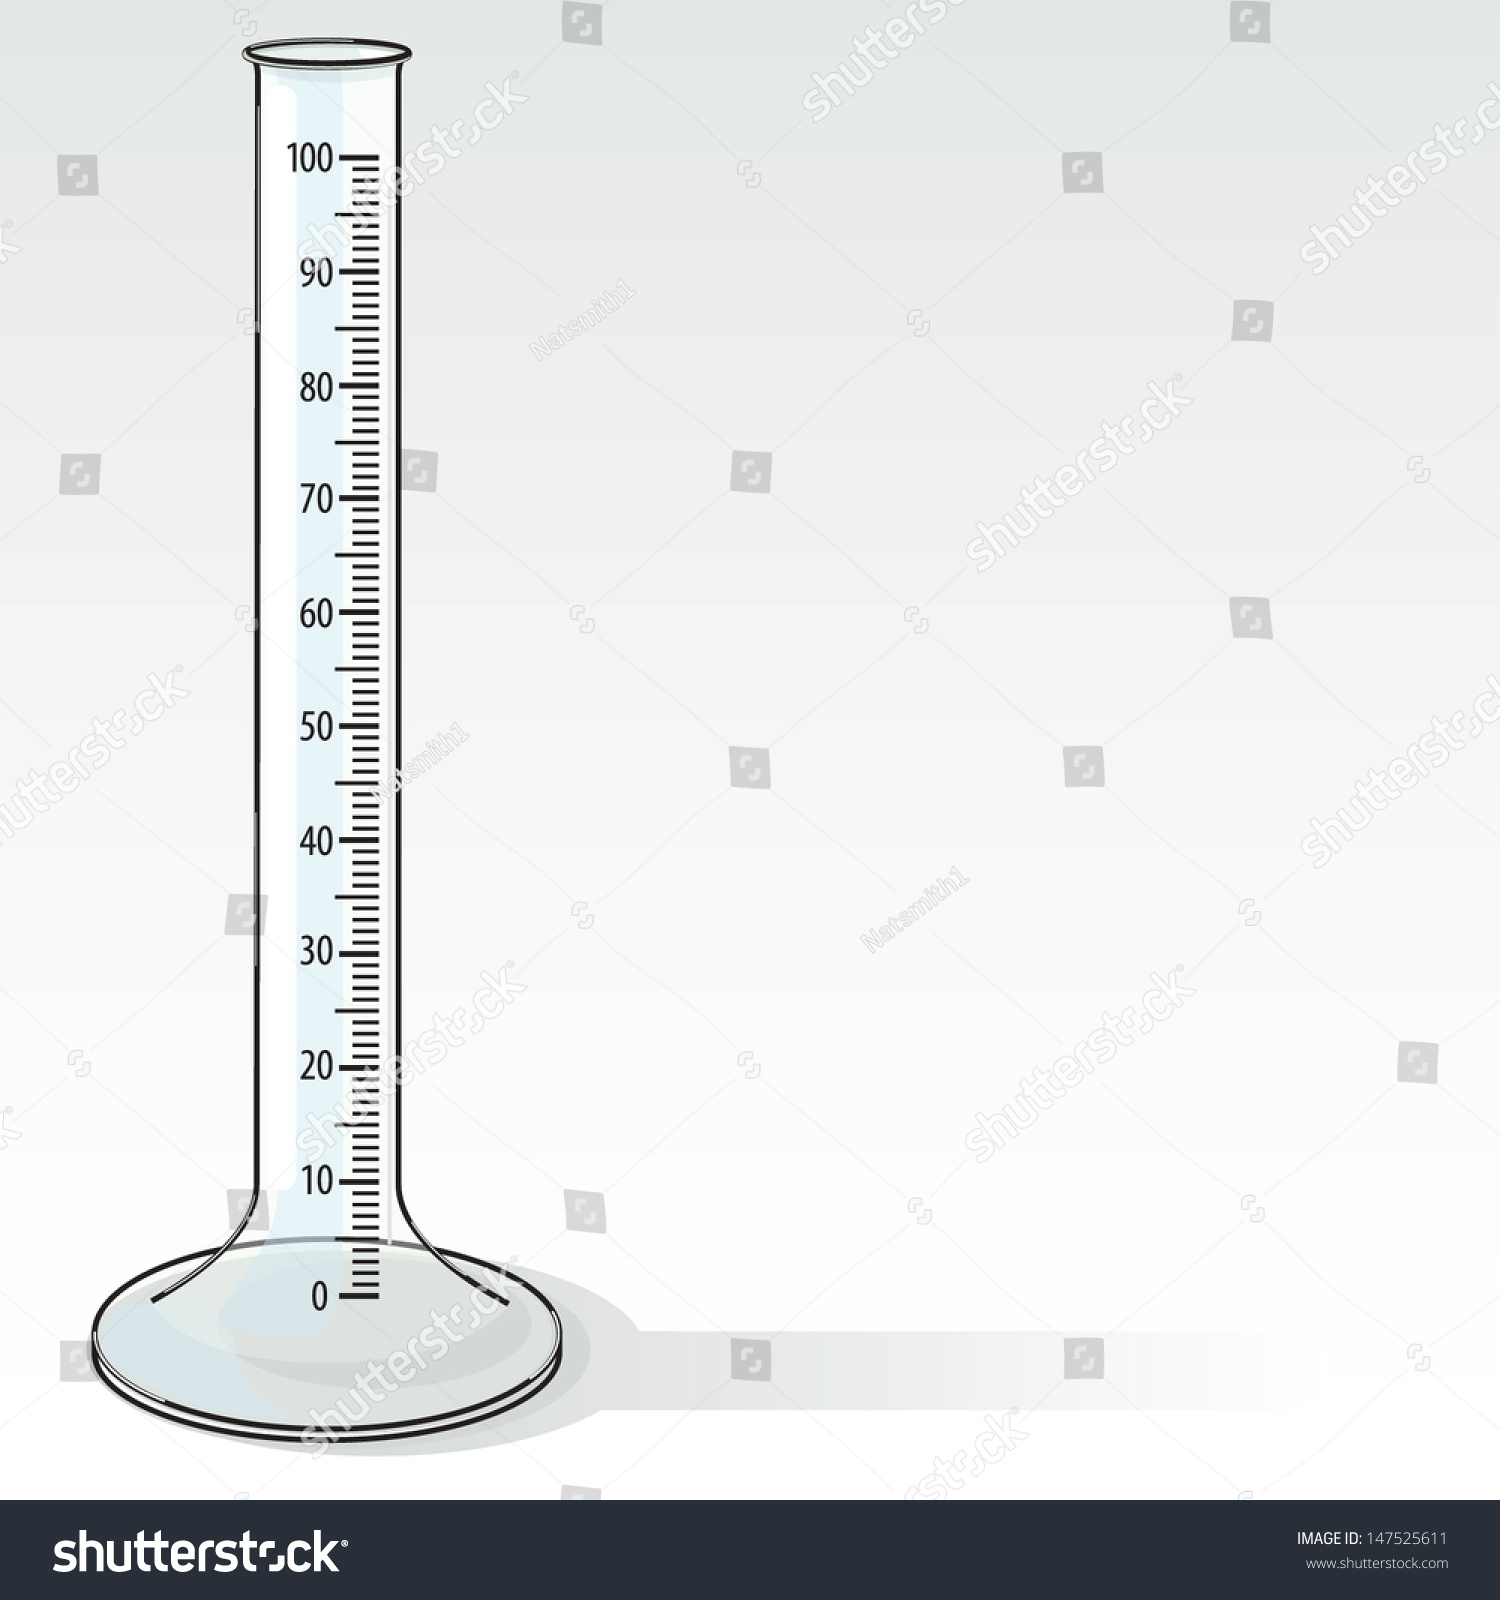 Graduated Cylinder Drawing